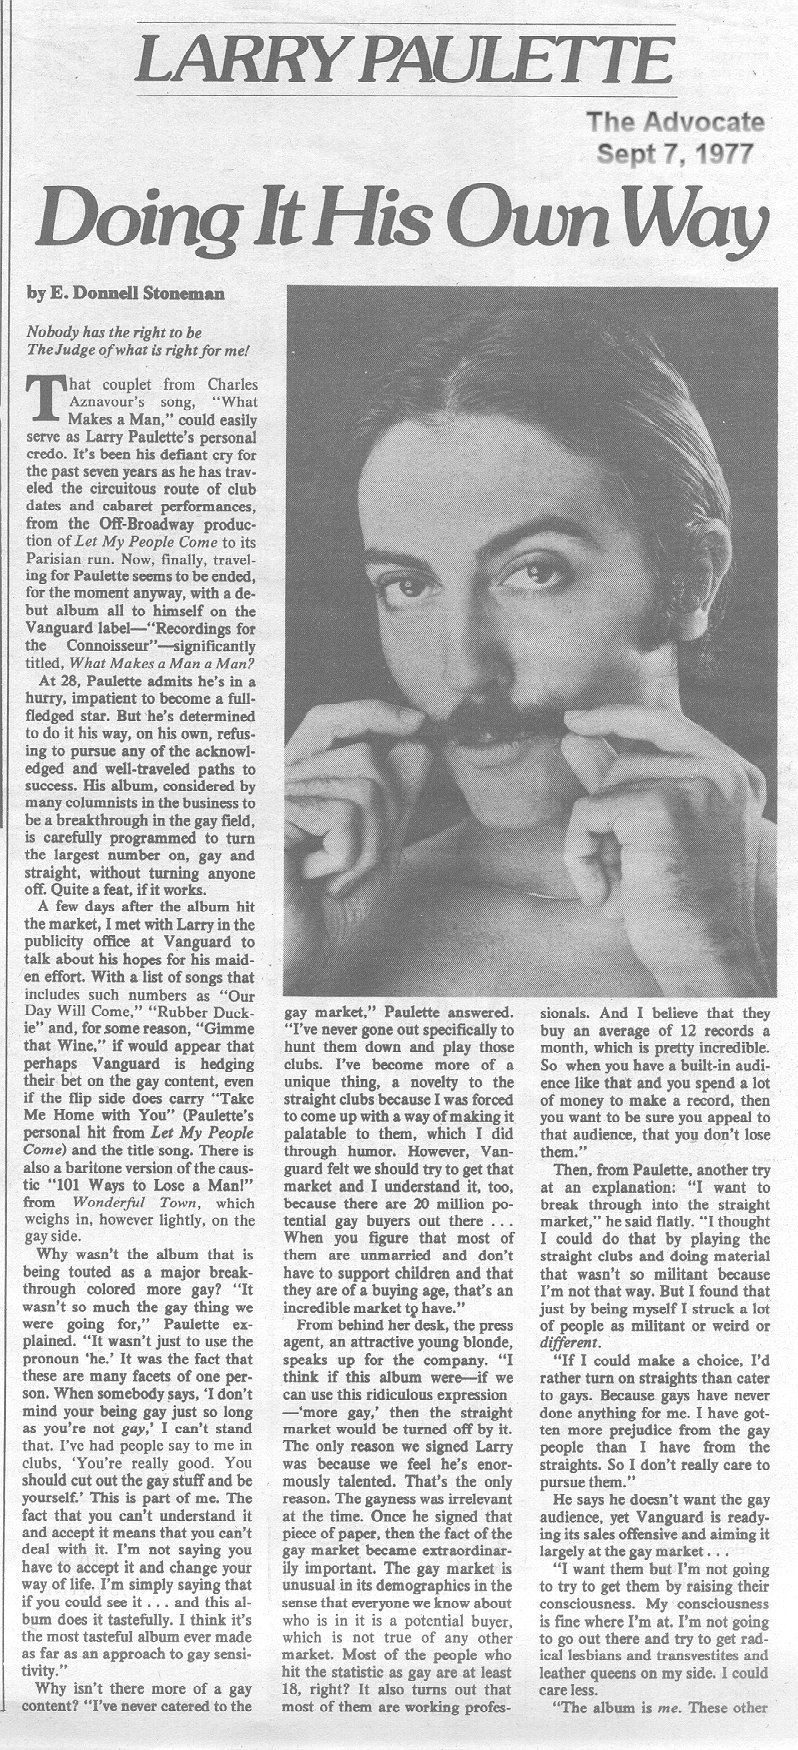 Advocate article, 9/7/77